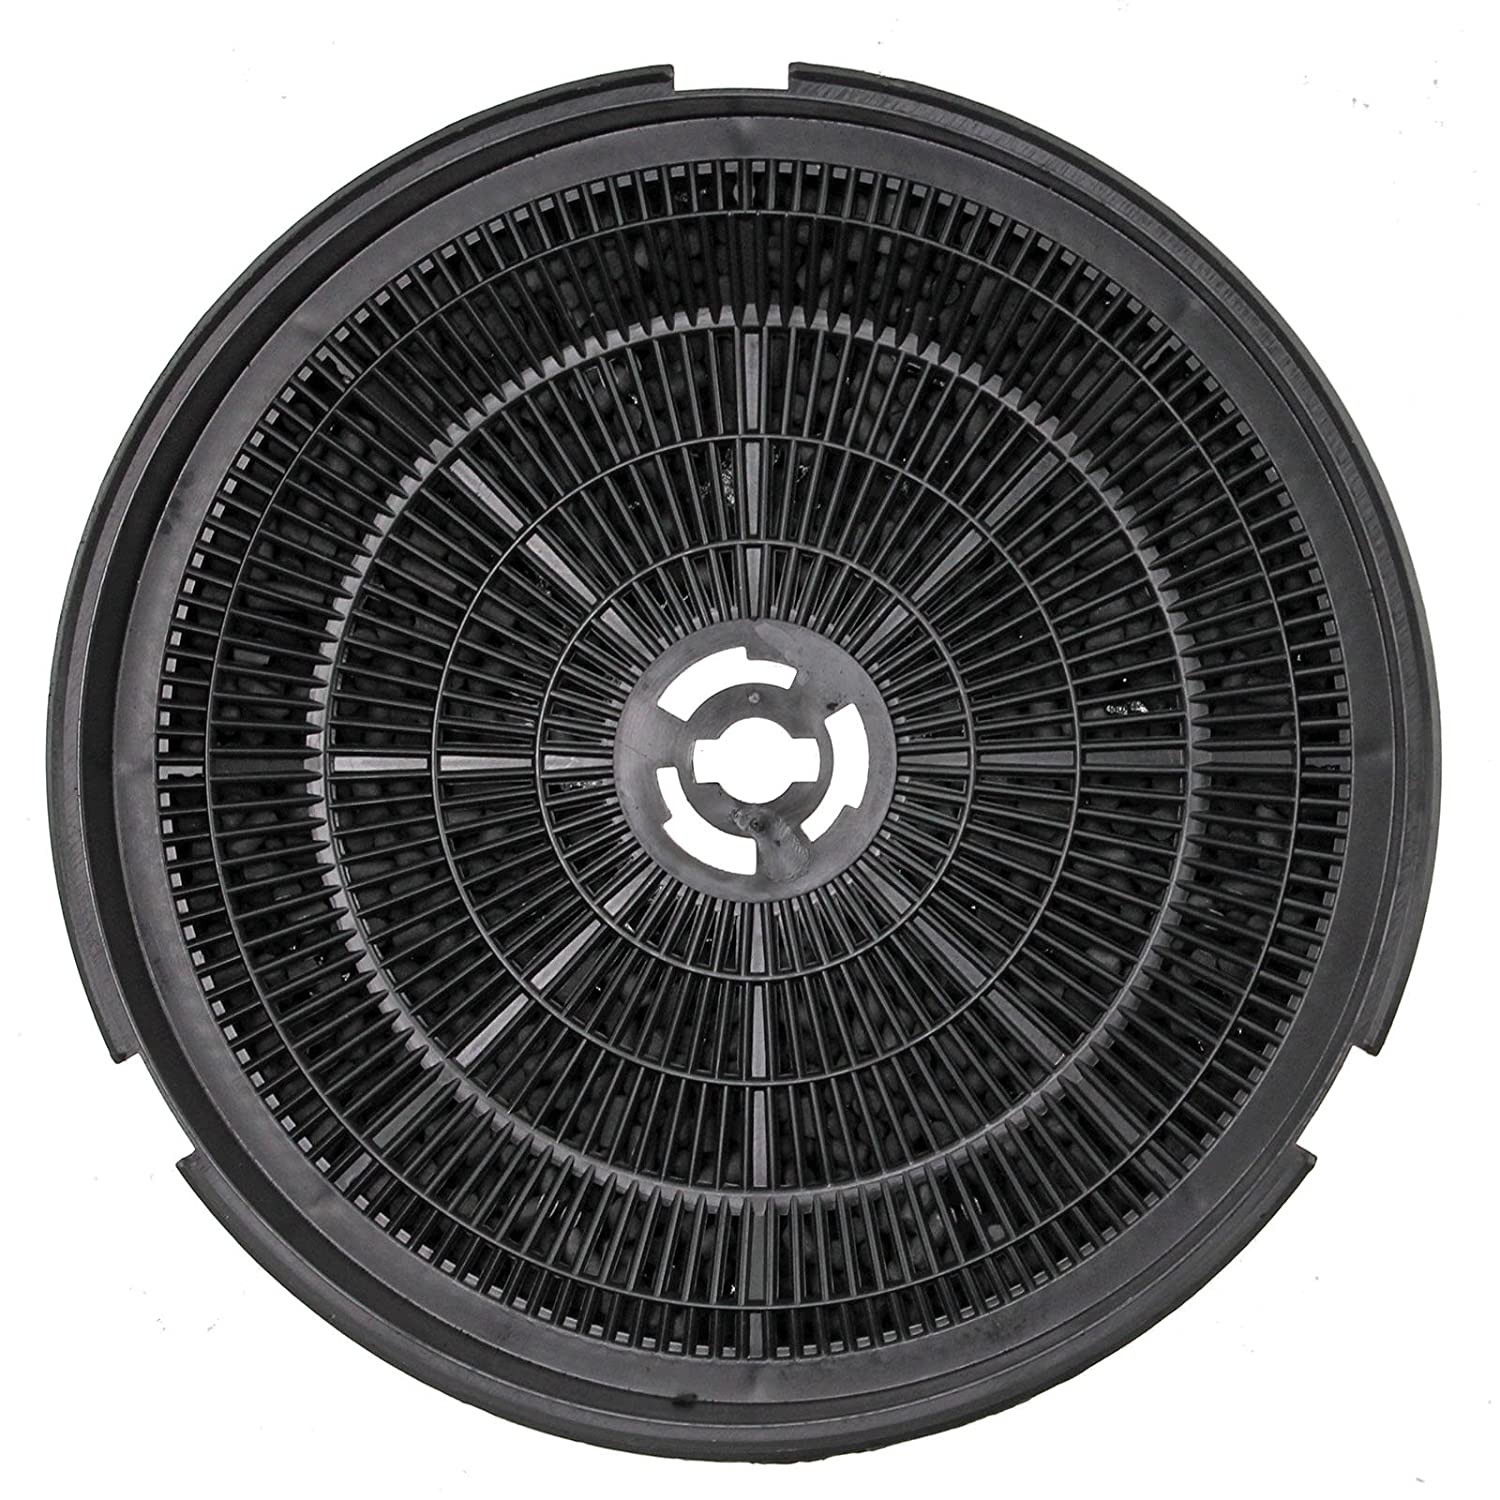 SPARES2GO Type 150 Charcoal Carbon Filter for New World CHIM110BL Cooker Hood Vent (190 x 38 mm)